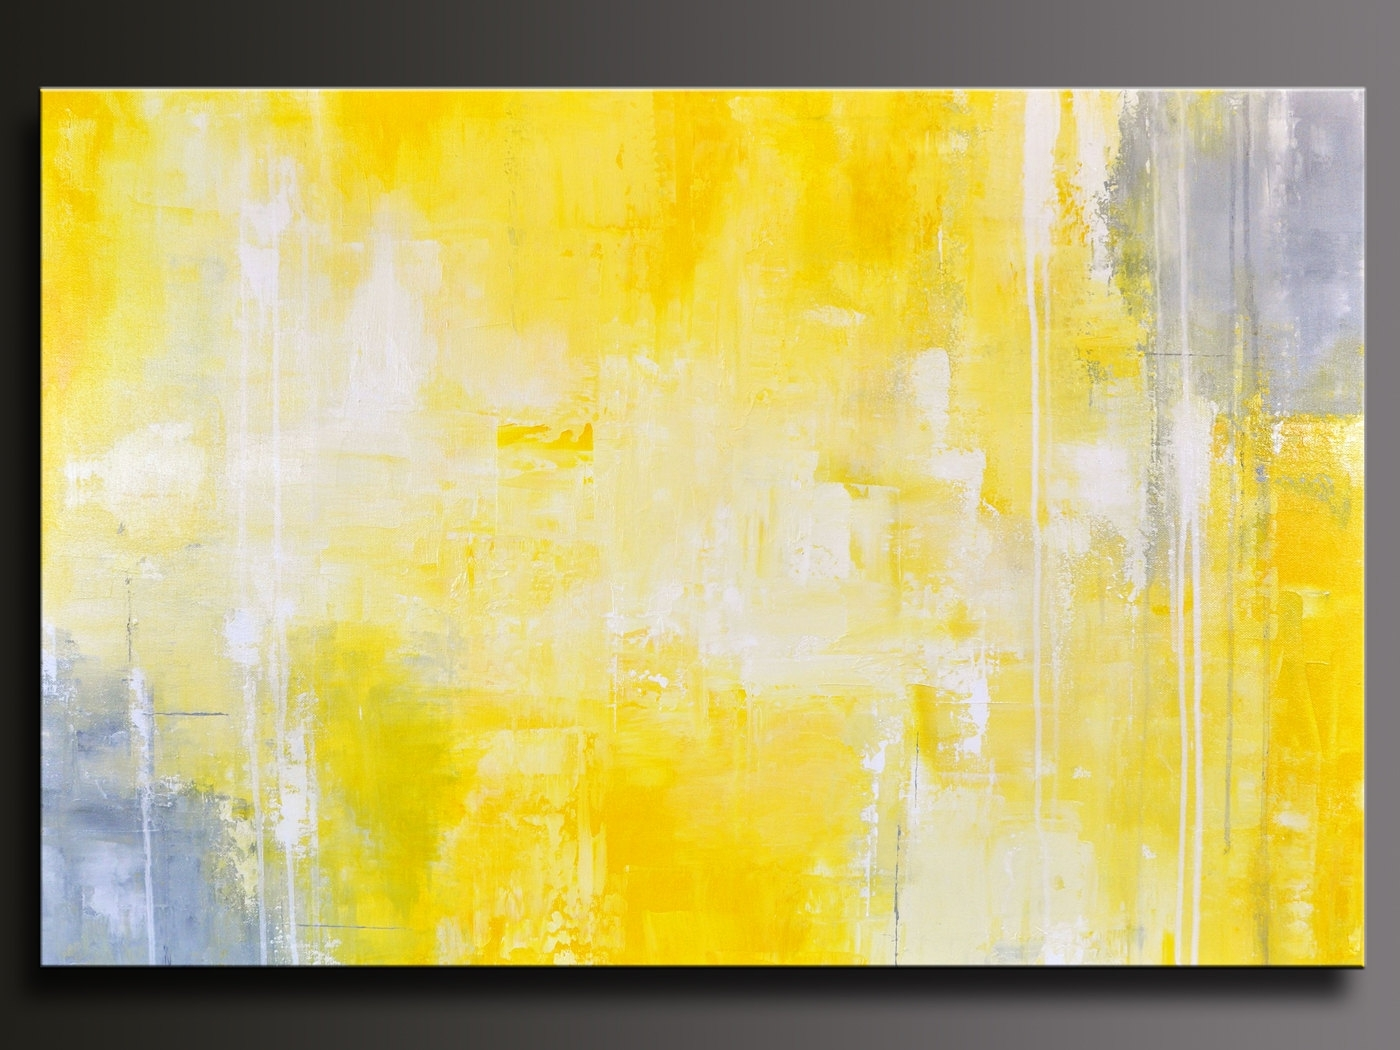 Wall Art Designs: Yellow And Gray Wall Art Diy Wall Art Washington Intended For Most Recently Released Gray Abstract Wall Art (View 12 of 15)